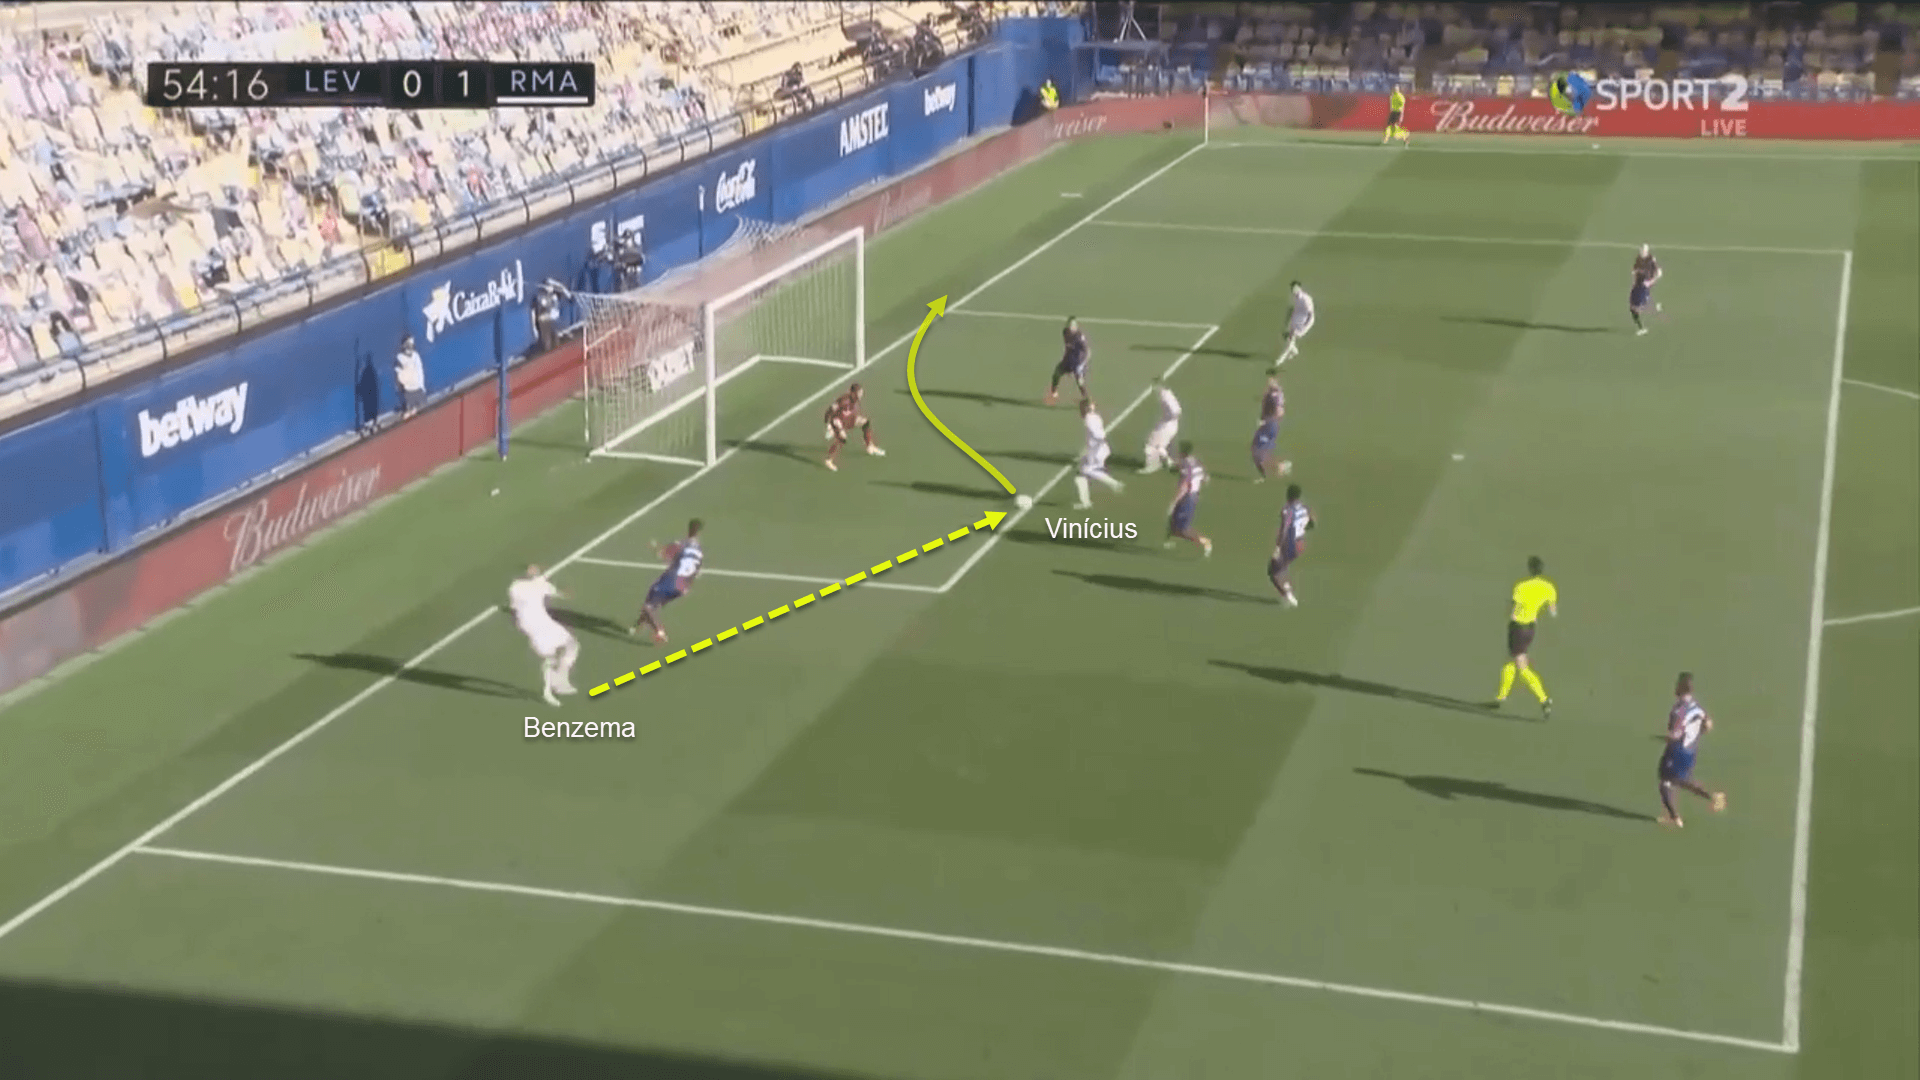 Real Madrid 2020/21: Their lack of fluency in attack - scout report - tactical analysis tactics